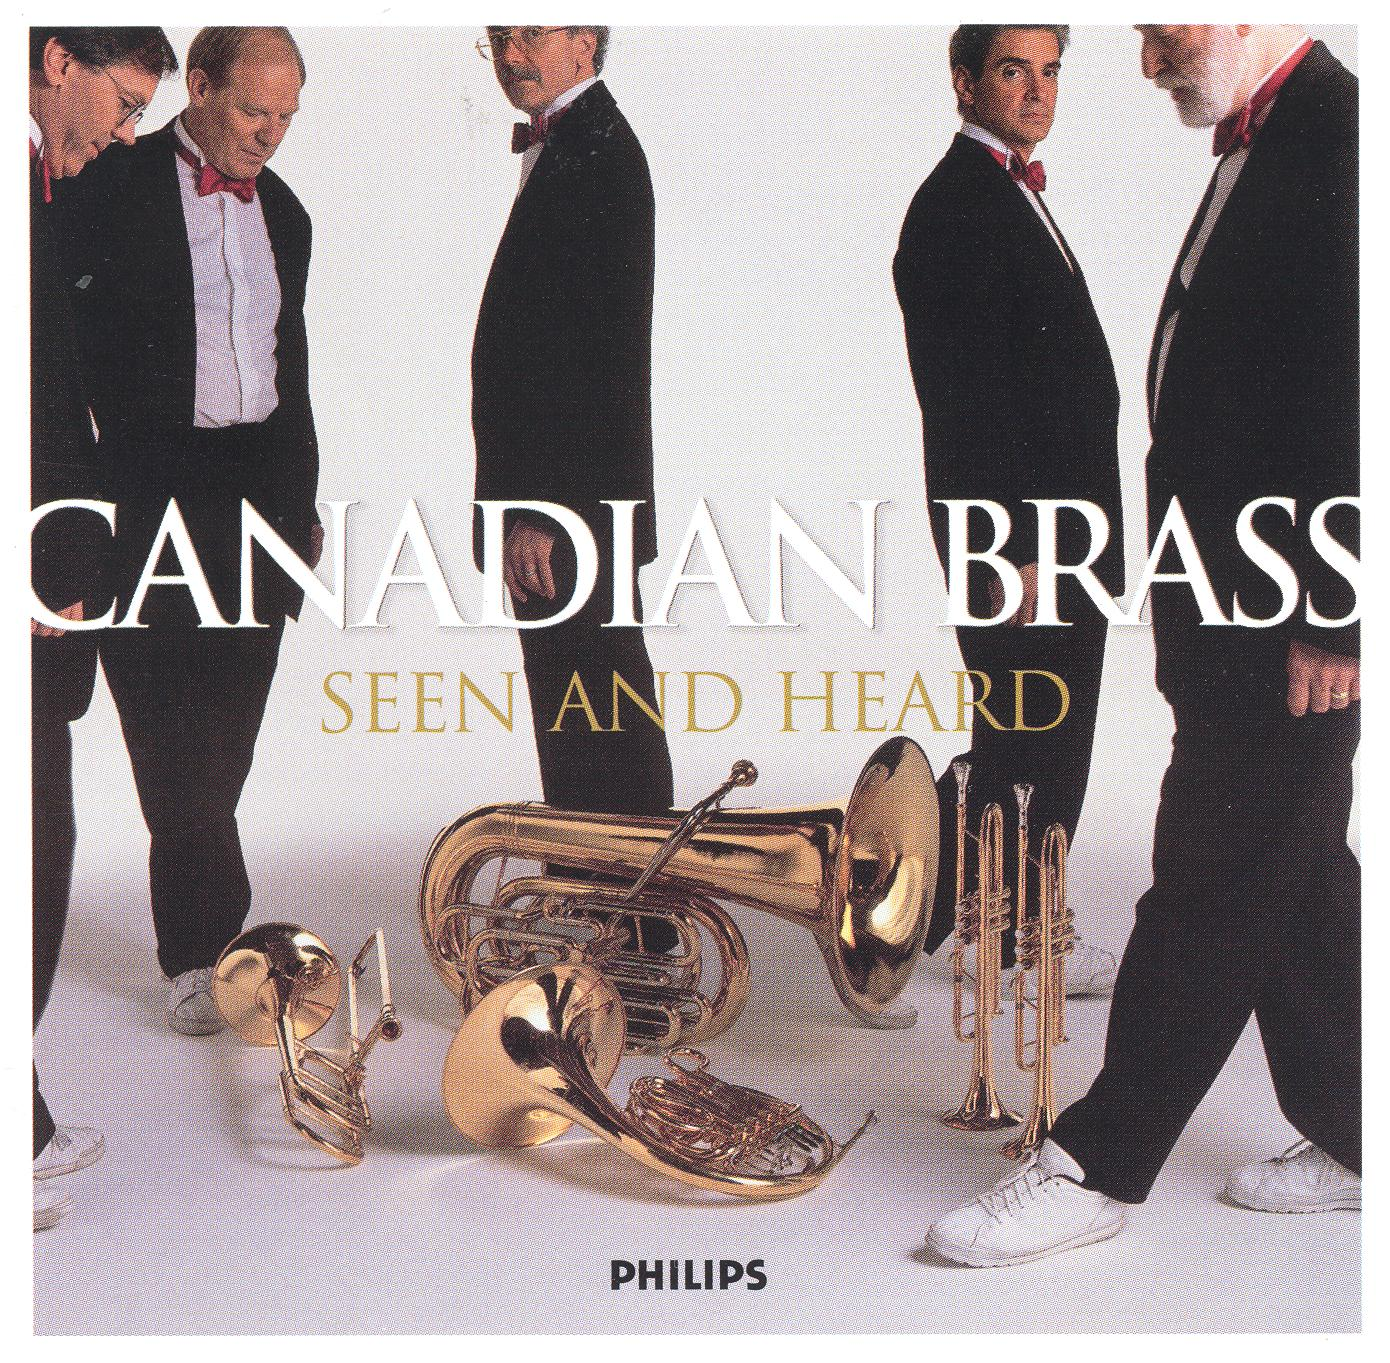 The Canadian Brass: Home Movies - An Innovative Portrait